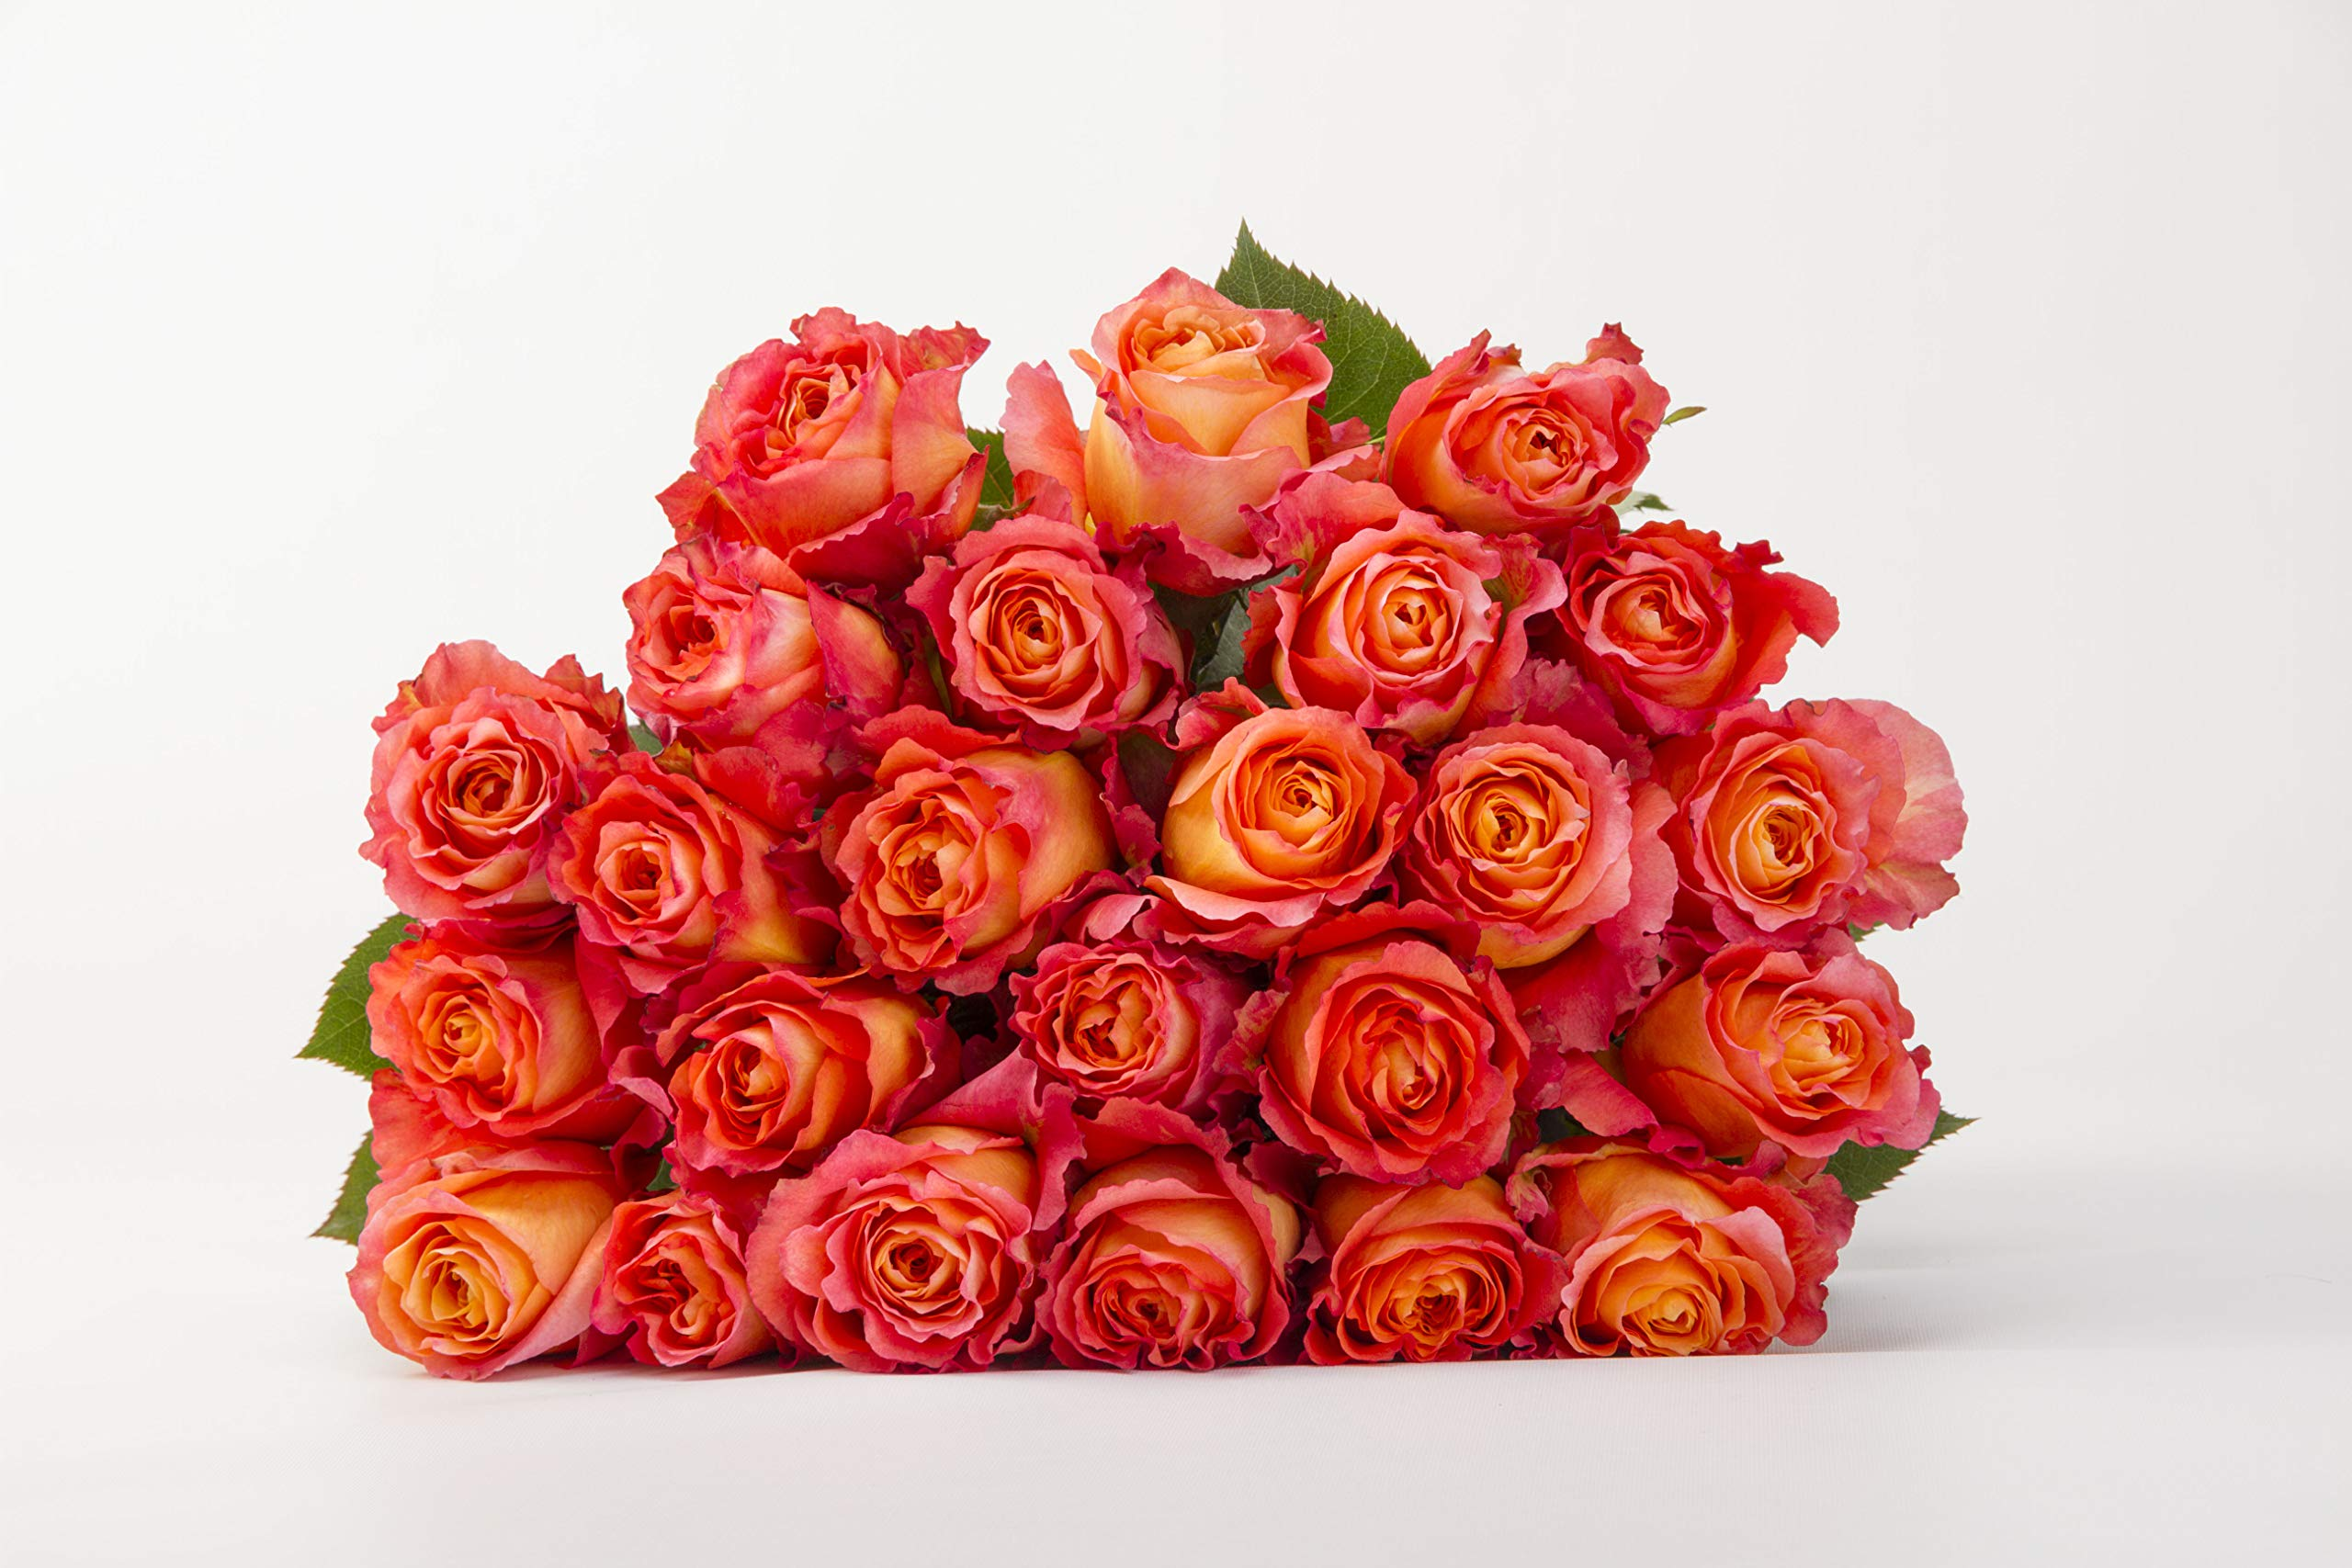 Martha Stewart Roses by BloomsyBox - Two Dozen Orange & Pink Free Spirit Roses Selected by Martha and Hand-Tied, Long Vase Life by BloomsyBox